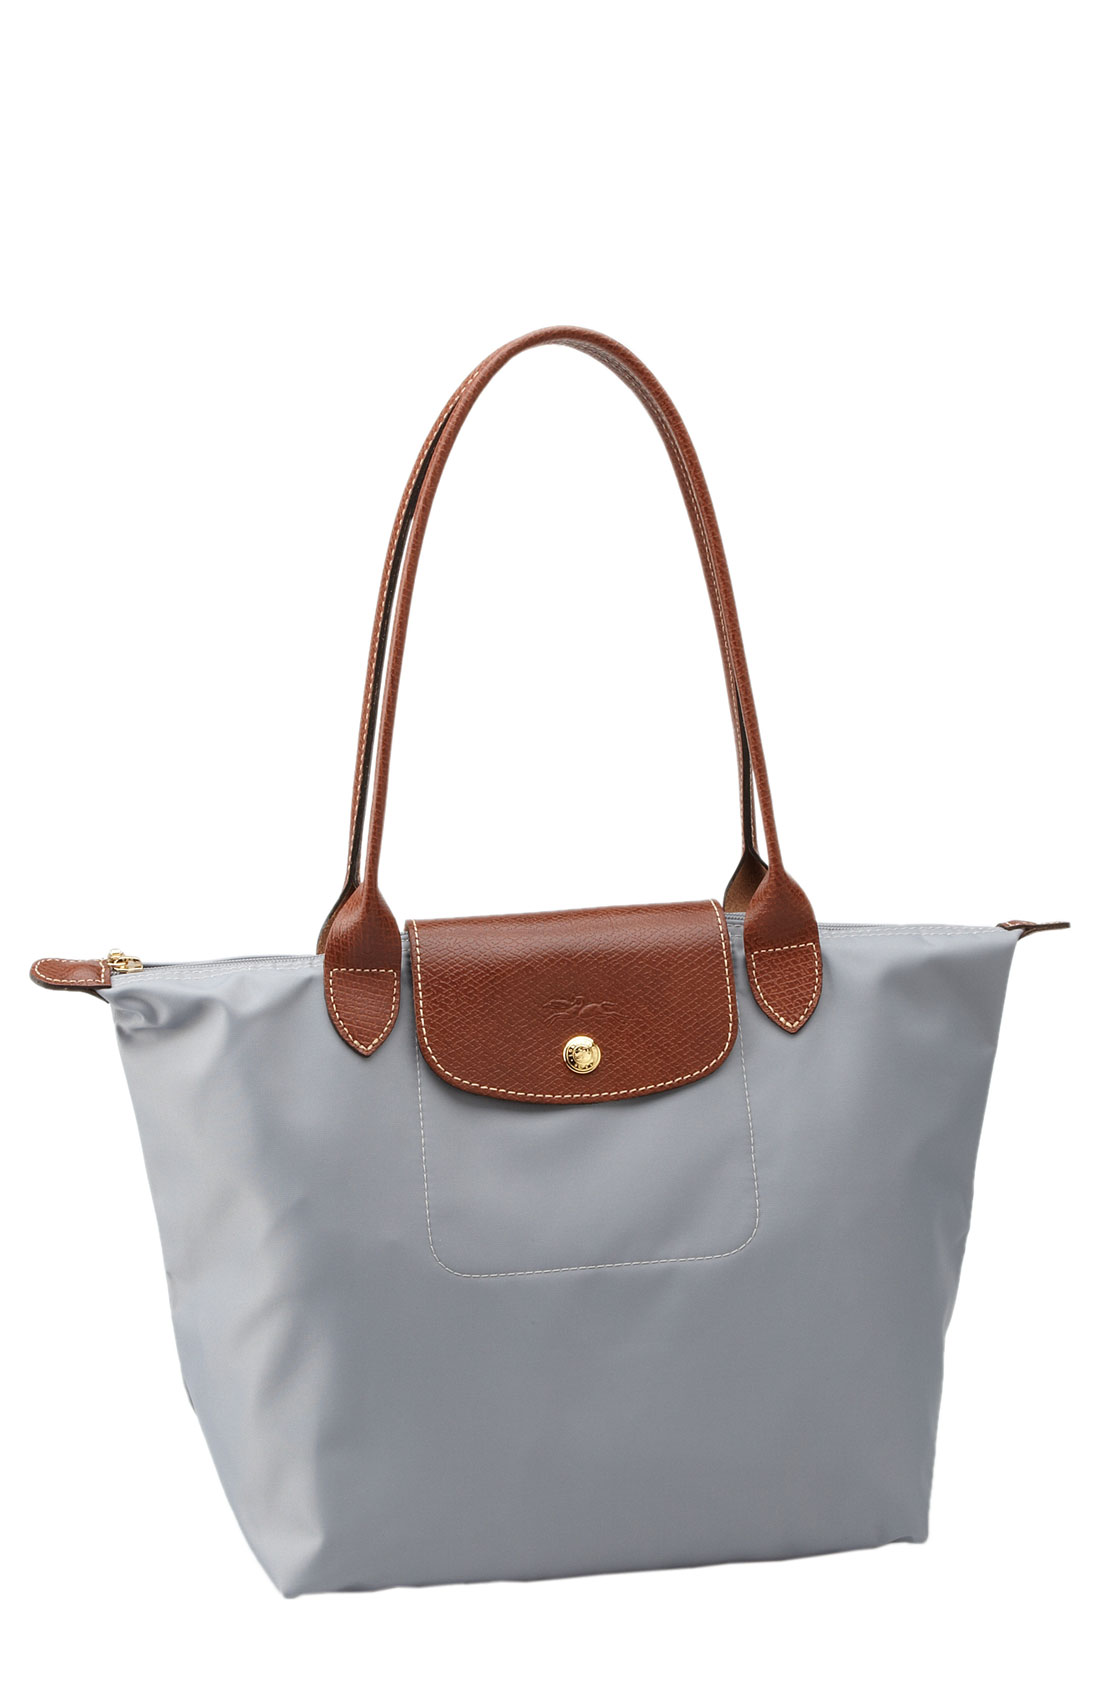 Longchamp Bag Le Pliage Colours : Longchamp le pliage tote bag in gray lyst